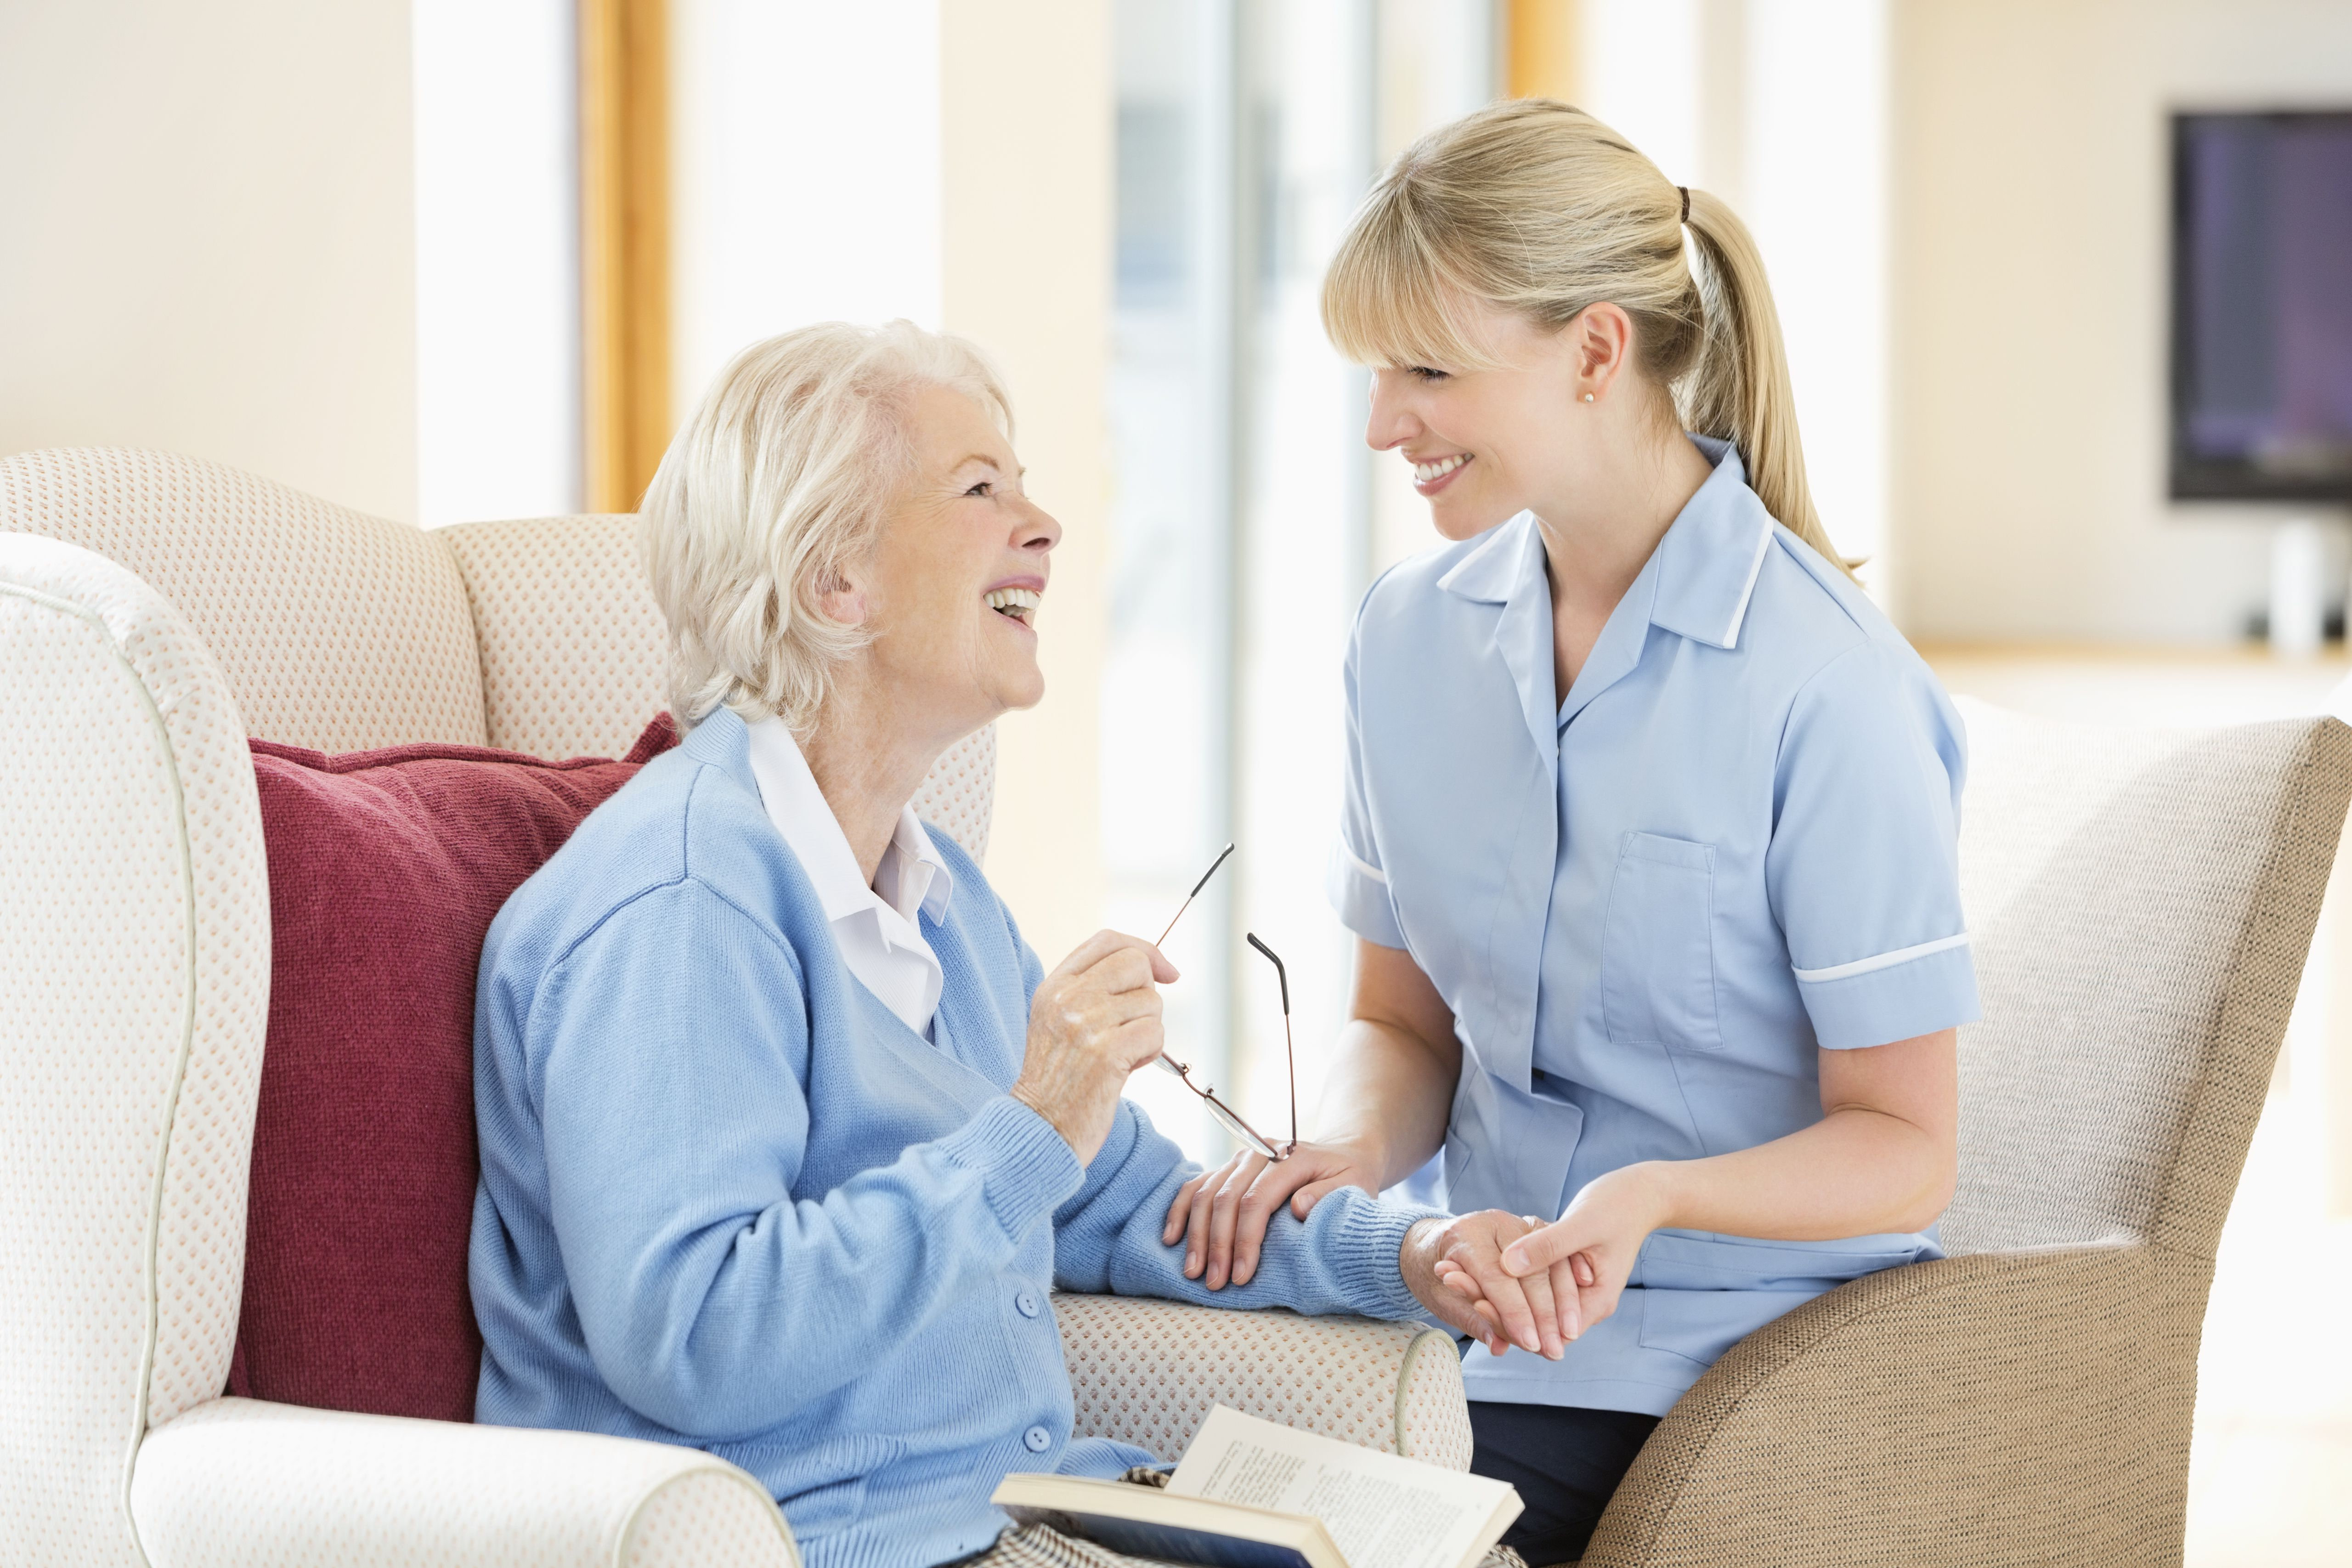 home health aide Home health aides and personal care aides typically need a high school diploma or equivalent, though some positions do not require it those working in certified home health or hospice agencies must complete formal training and pass a standardized test.